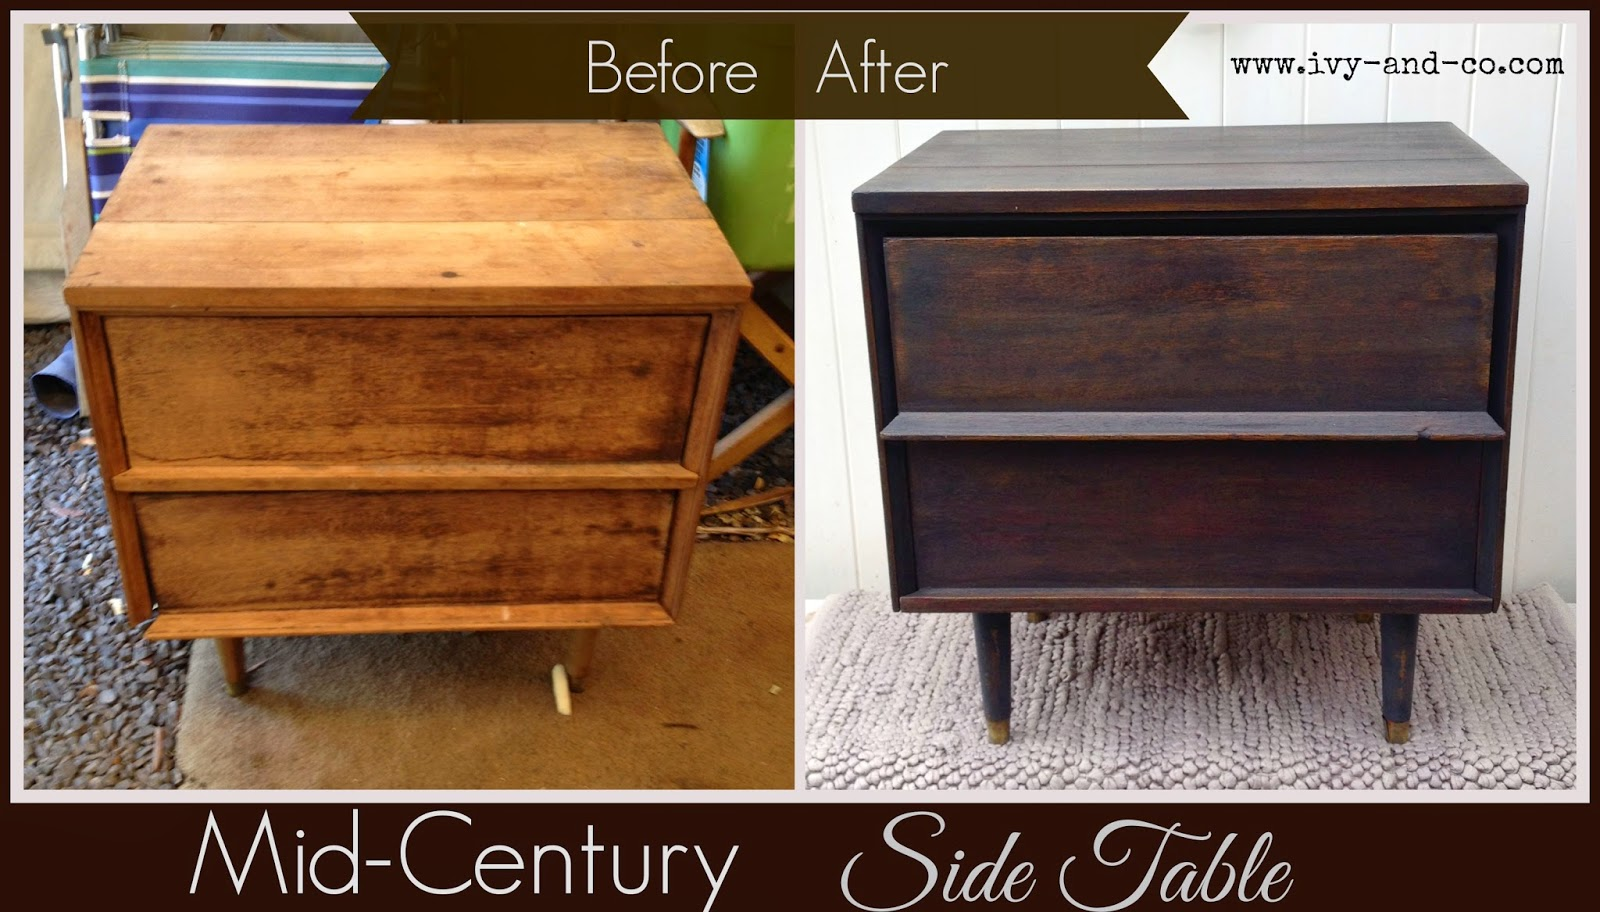 Ivy and co, the ivy and co, top blog posts, top 10, 2014 round up, favorite articles, furniture, how to get your product into retail stores, kids memory verses